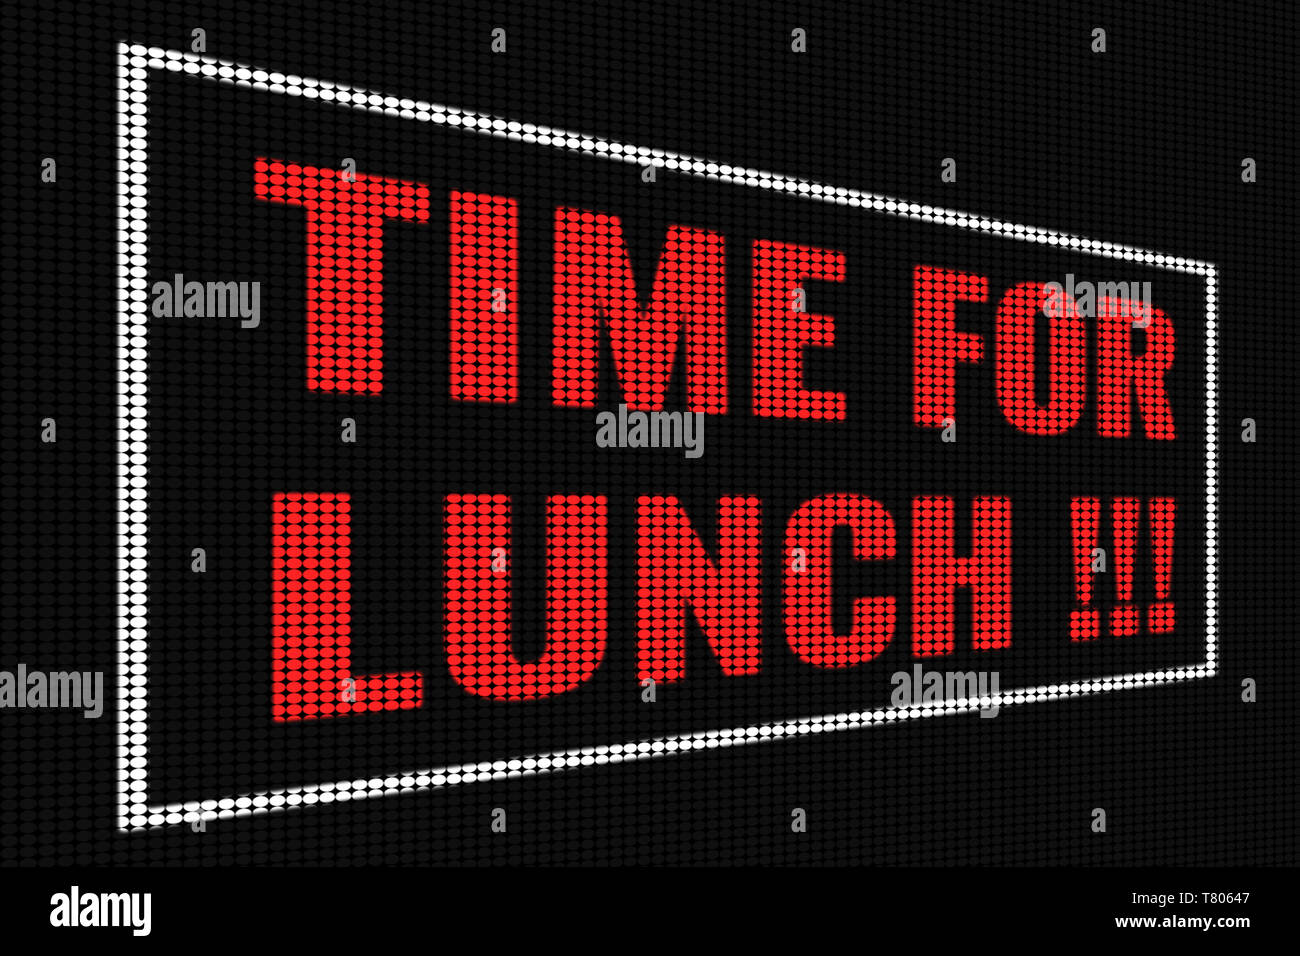 Time For Lunch red text on dark screen, tv effect. - Stock Image